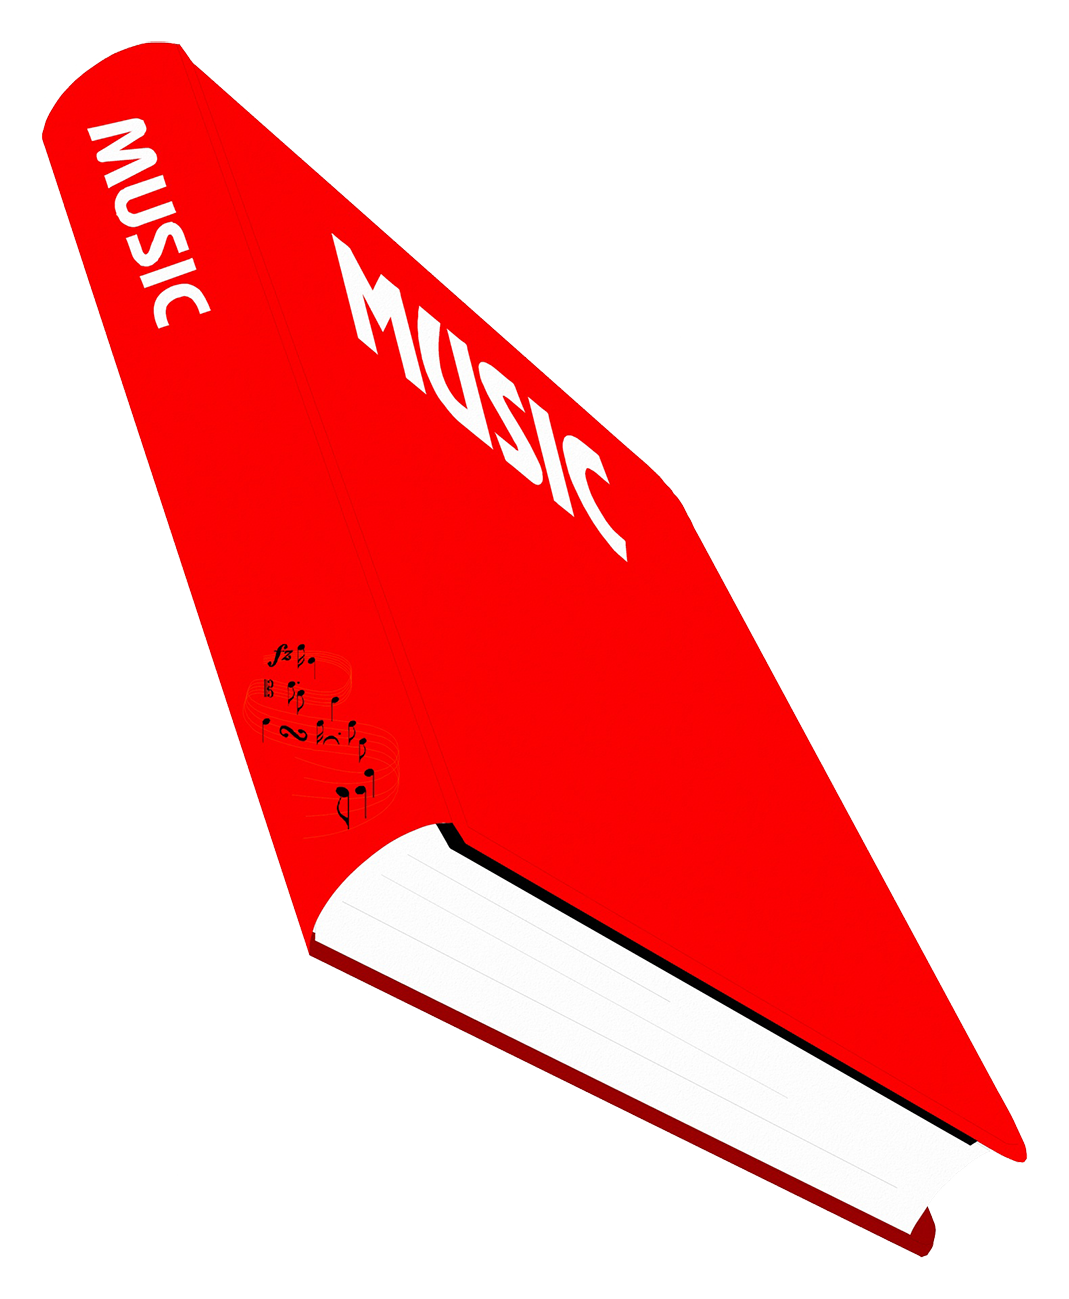 music book clipart red